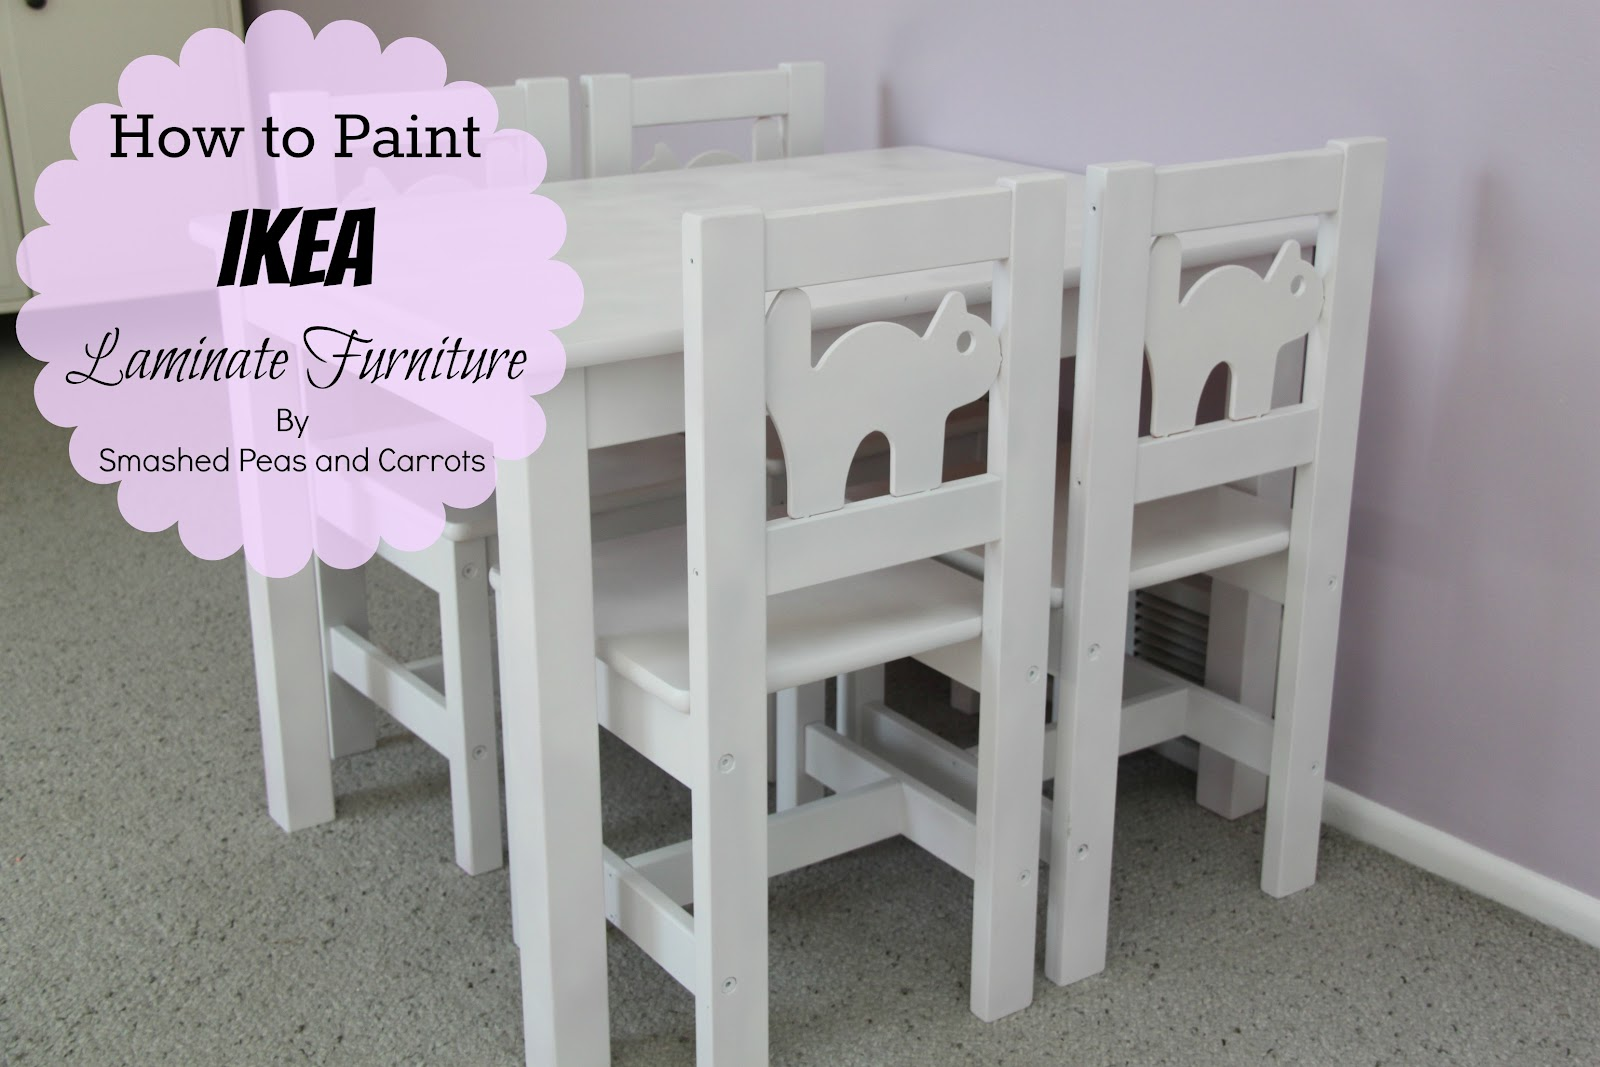 how to paint ikea laminate furniture tutorial smashed. Black Bedroom Furniture Sets. Home Design Ideas